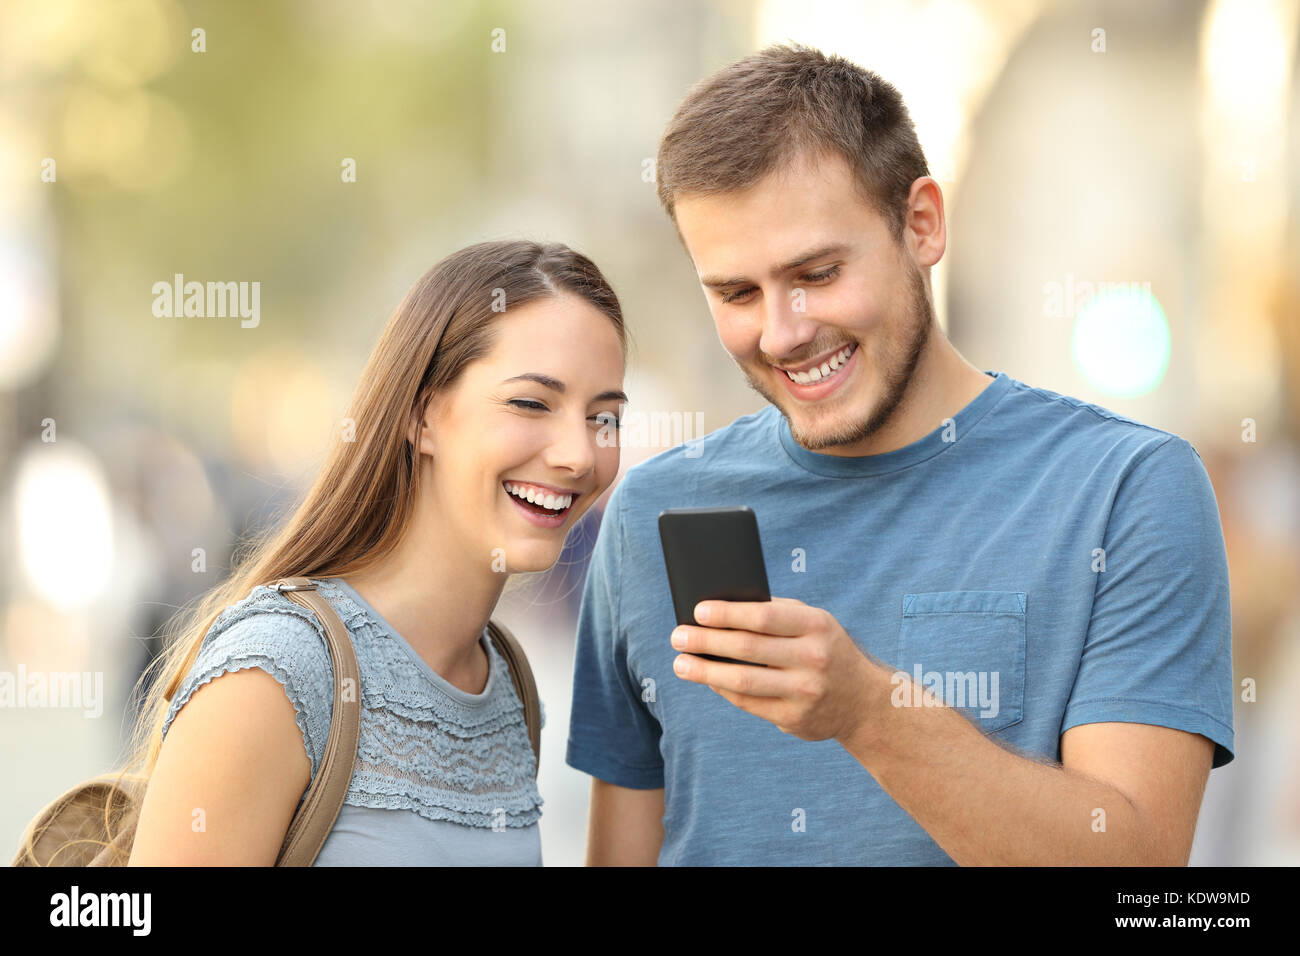 Happy couple enjoying using a smart phone standing on the street - Stock Image